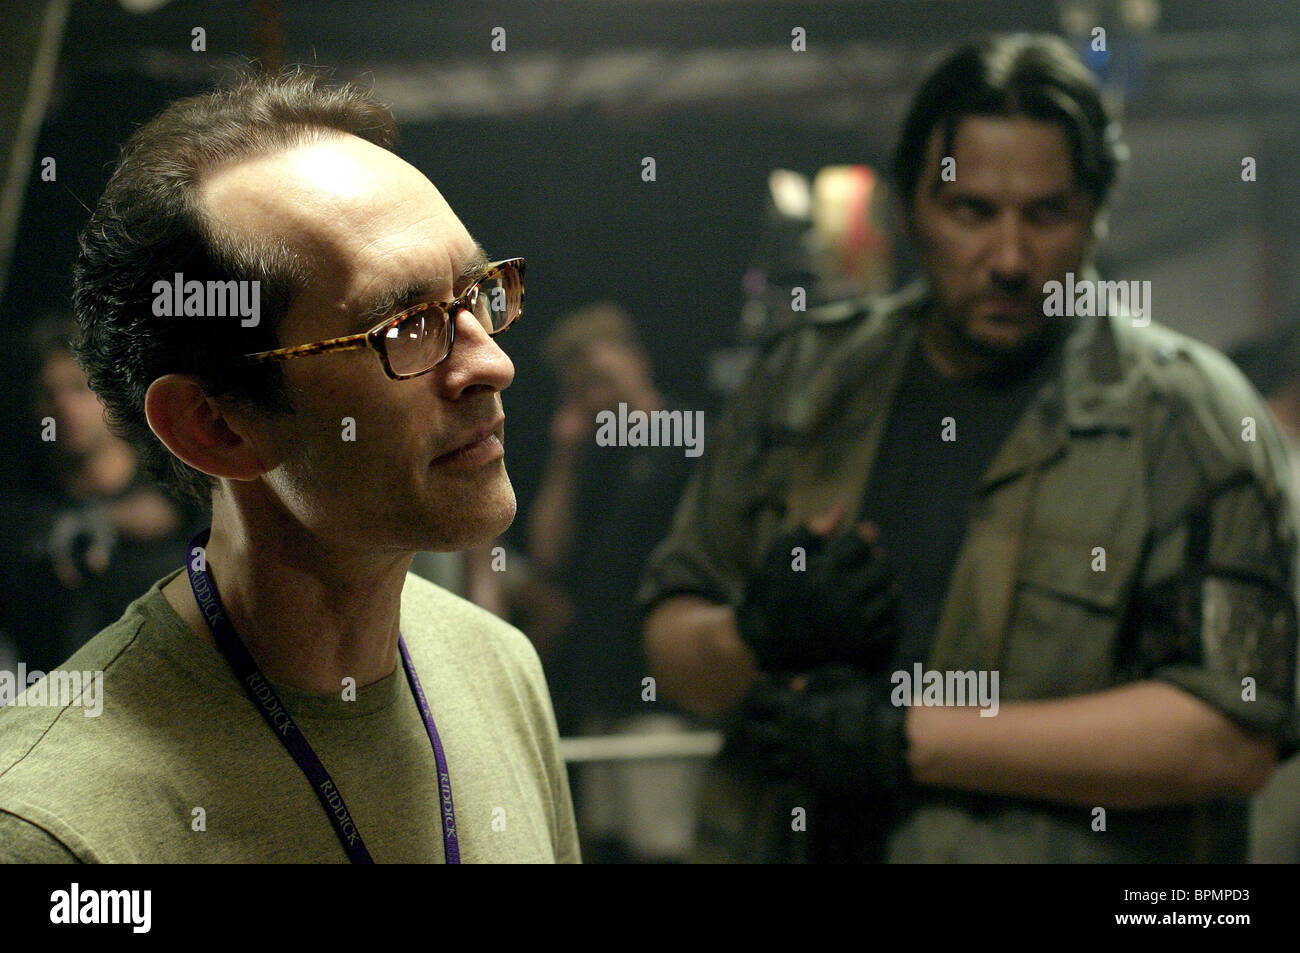 DAVID TWOHY & VITALY KRAVCHENKO PITCH BLACK 2: THE CHRONICLES OF RIDDICK (2004) - Stock Image